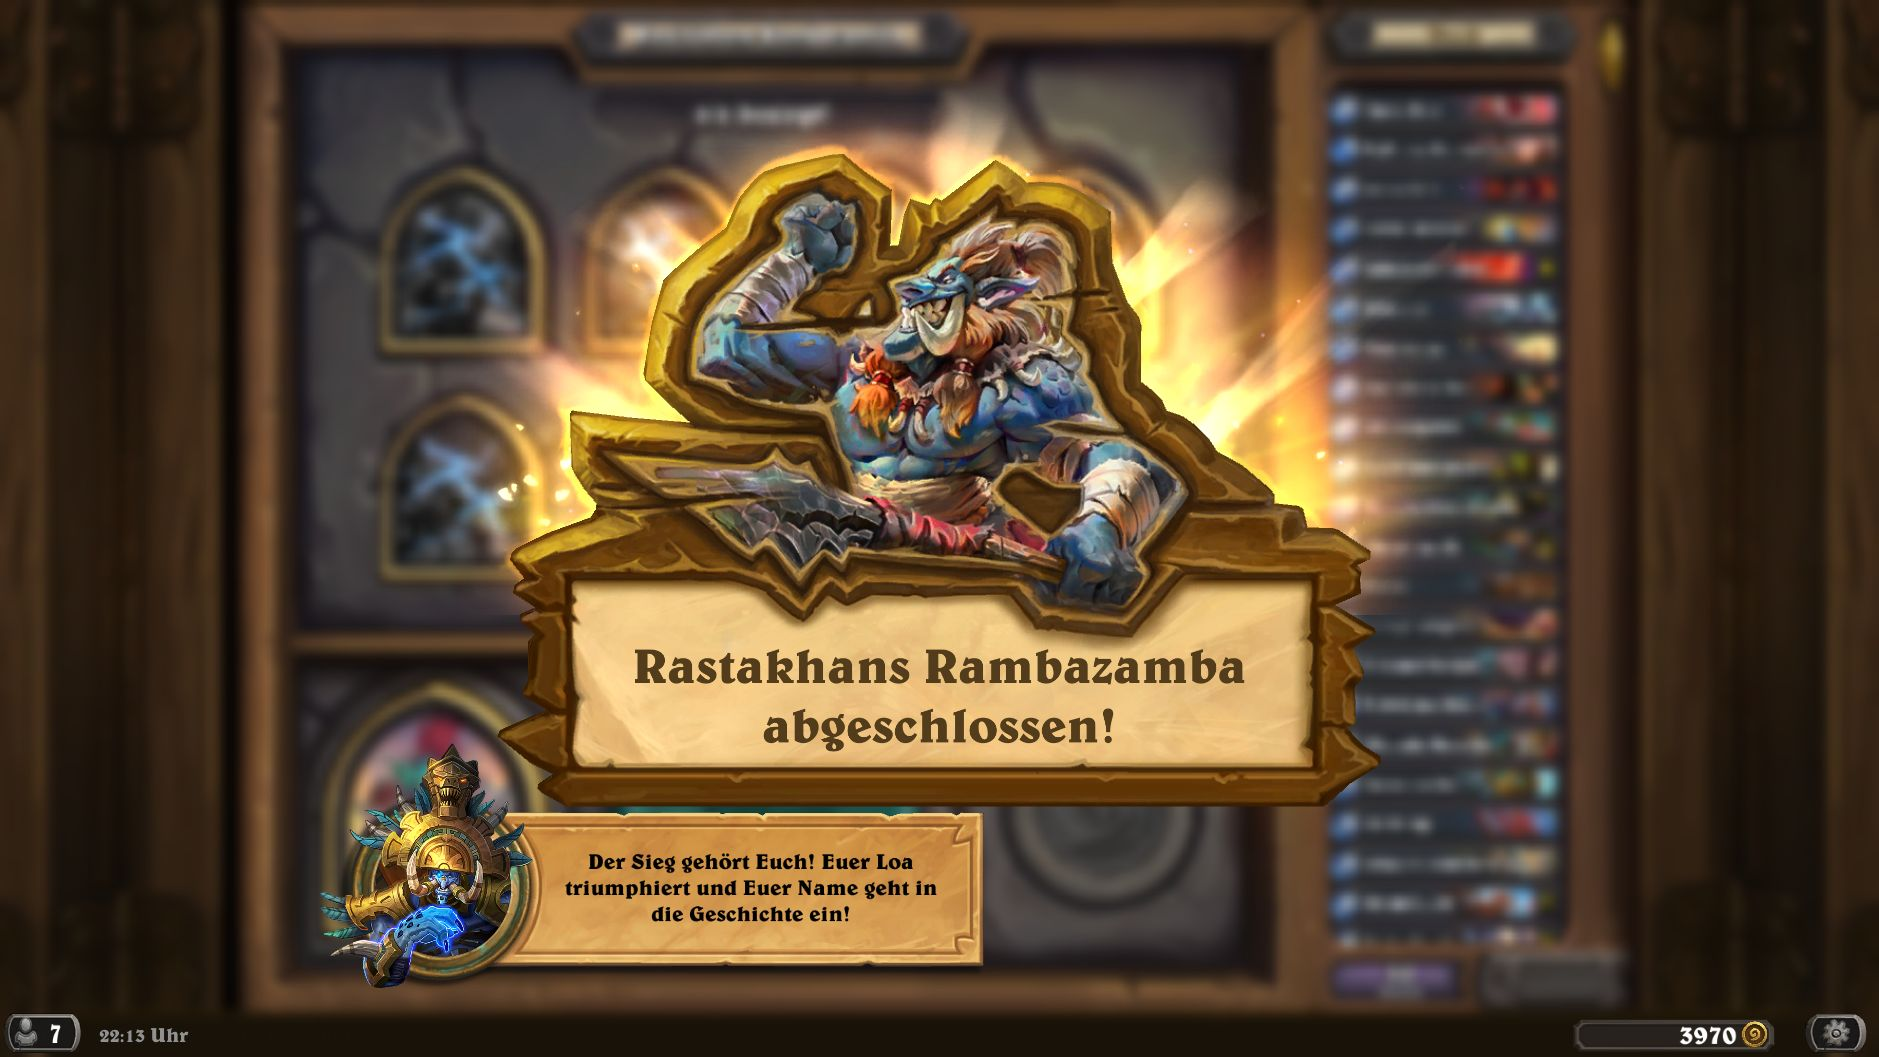 Hearthstone Rambazamba Screenshot 2